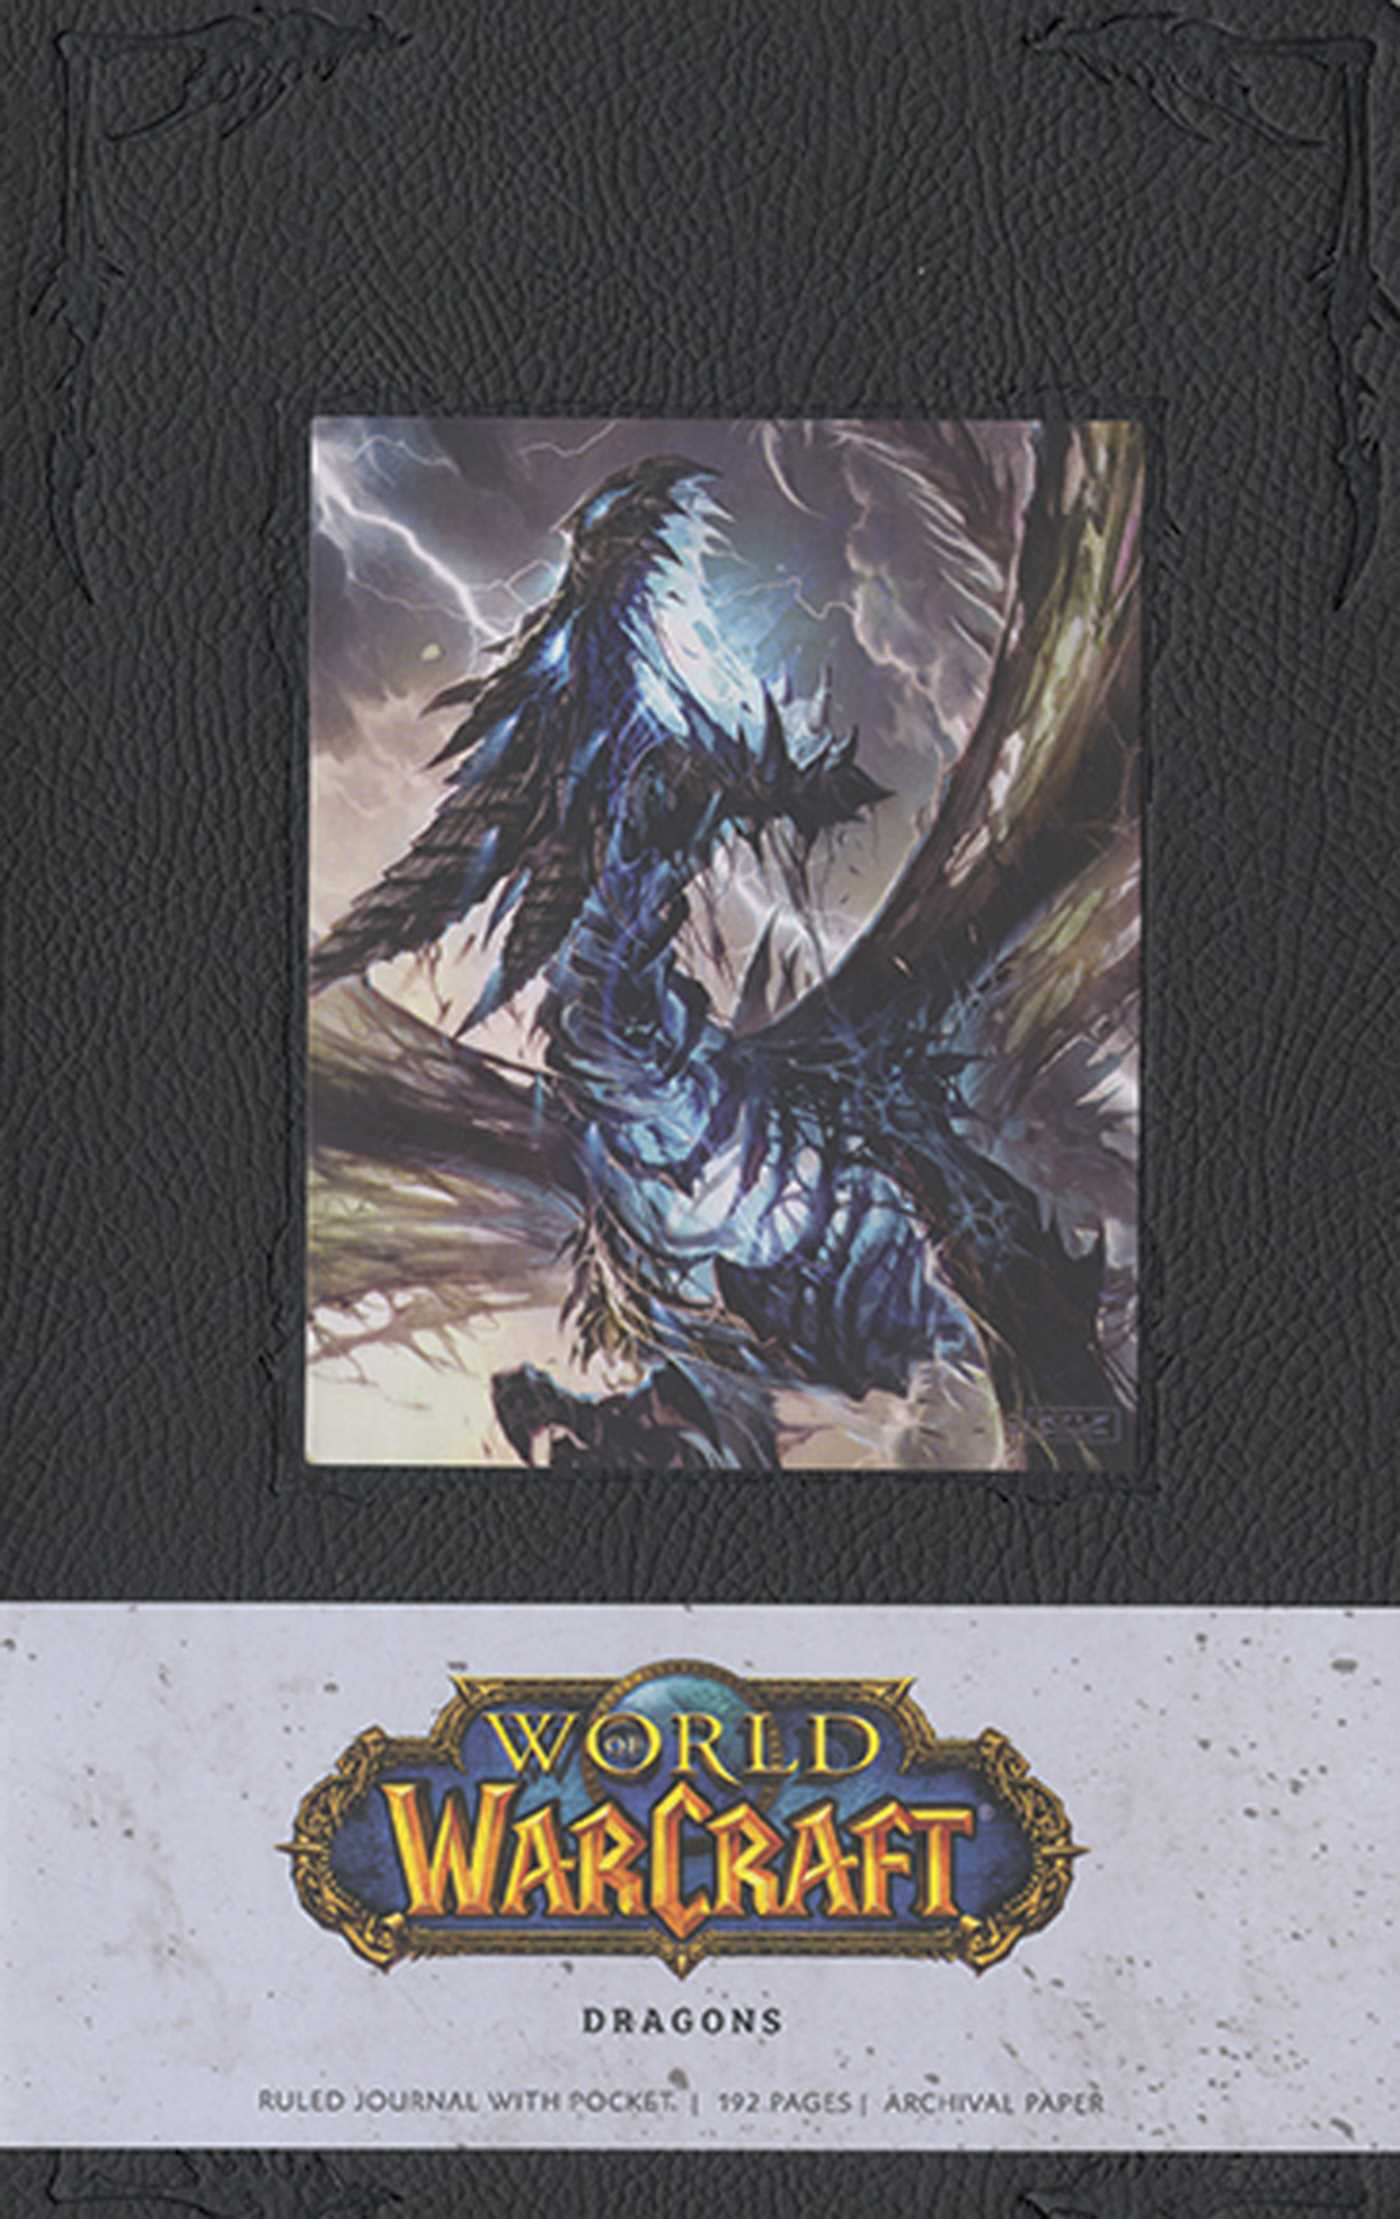 Book Cover Craft Quest : World of warcraft dragons hardcover ruled journal large